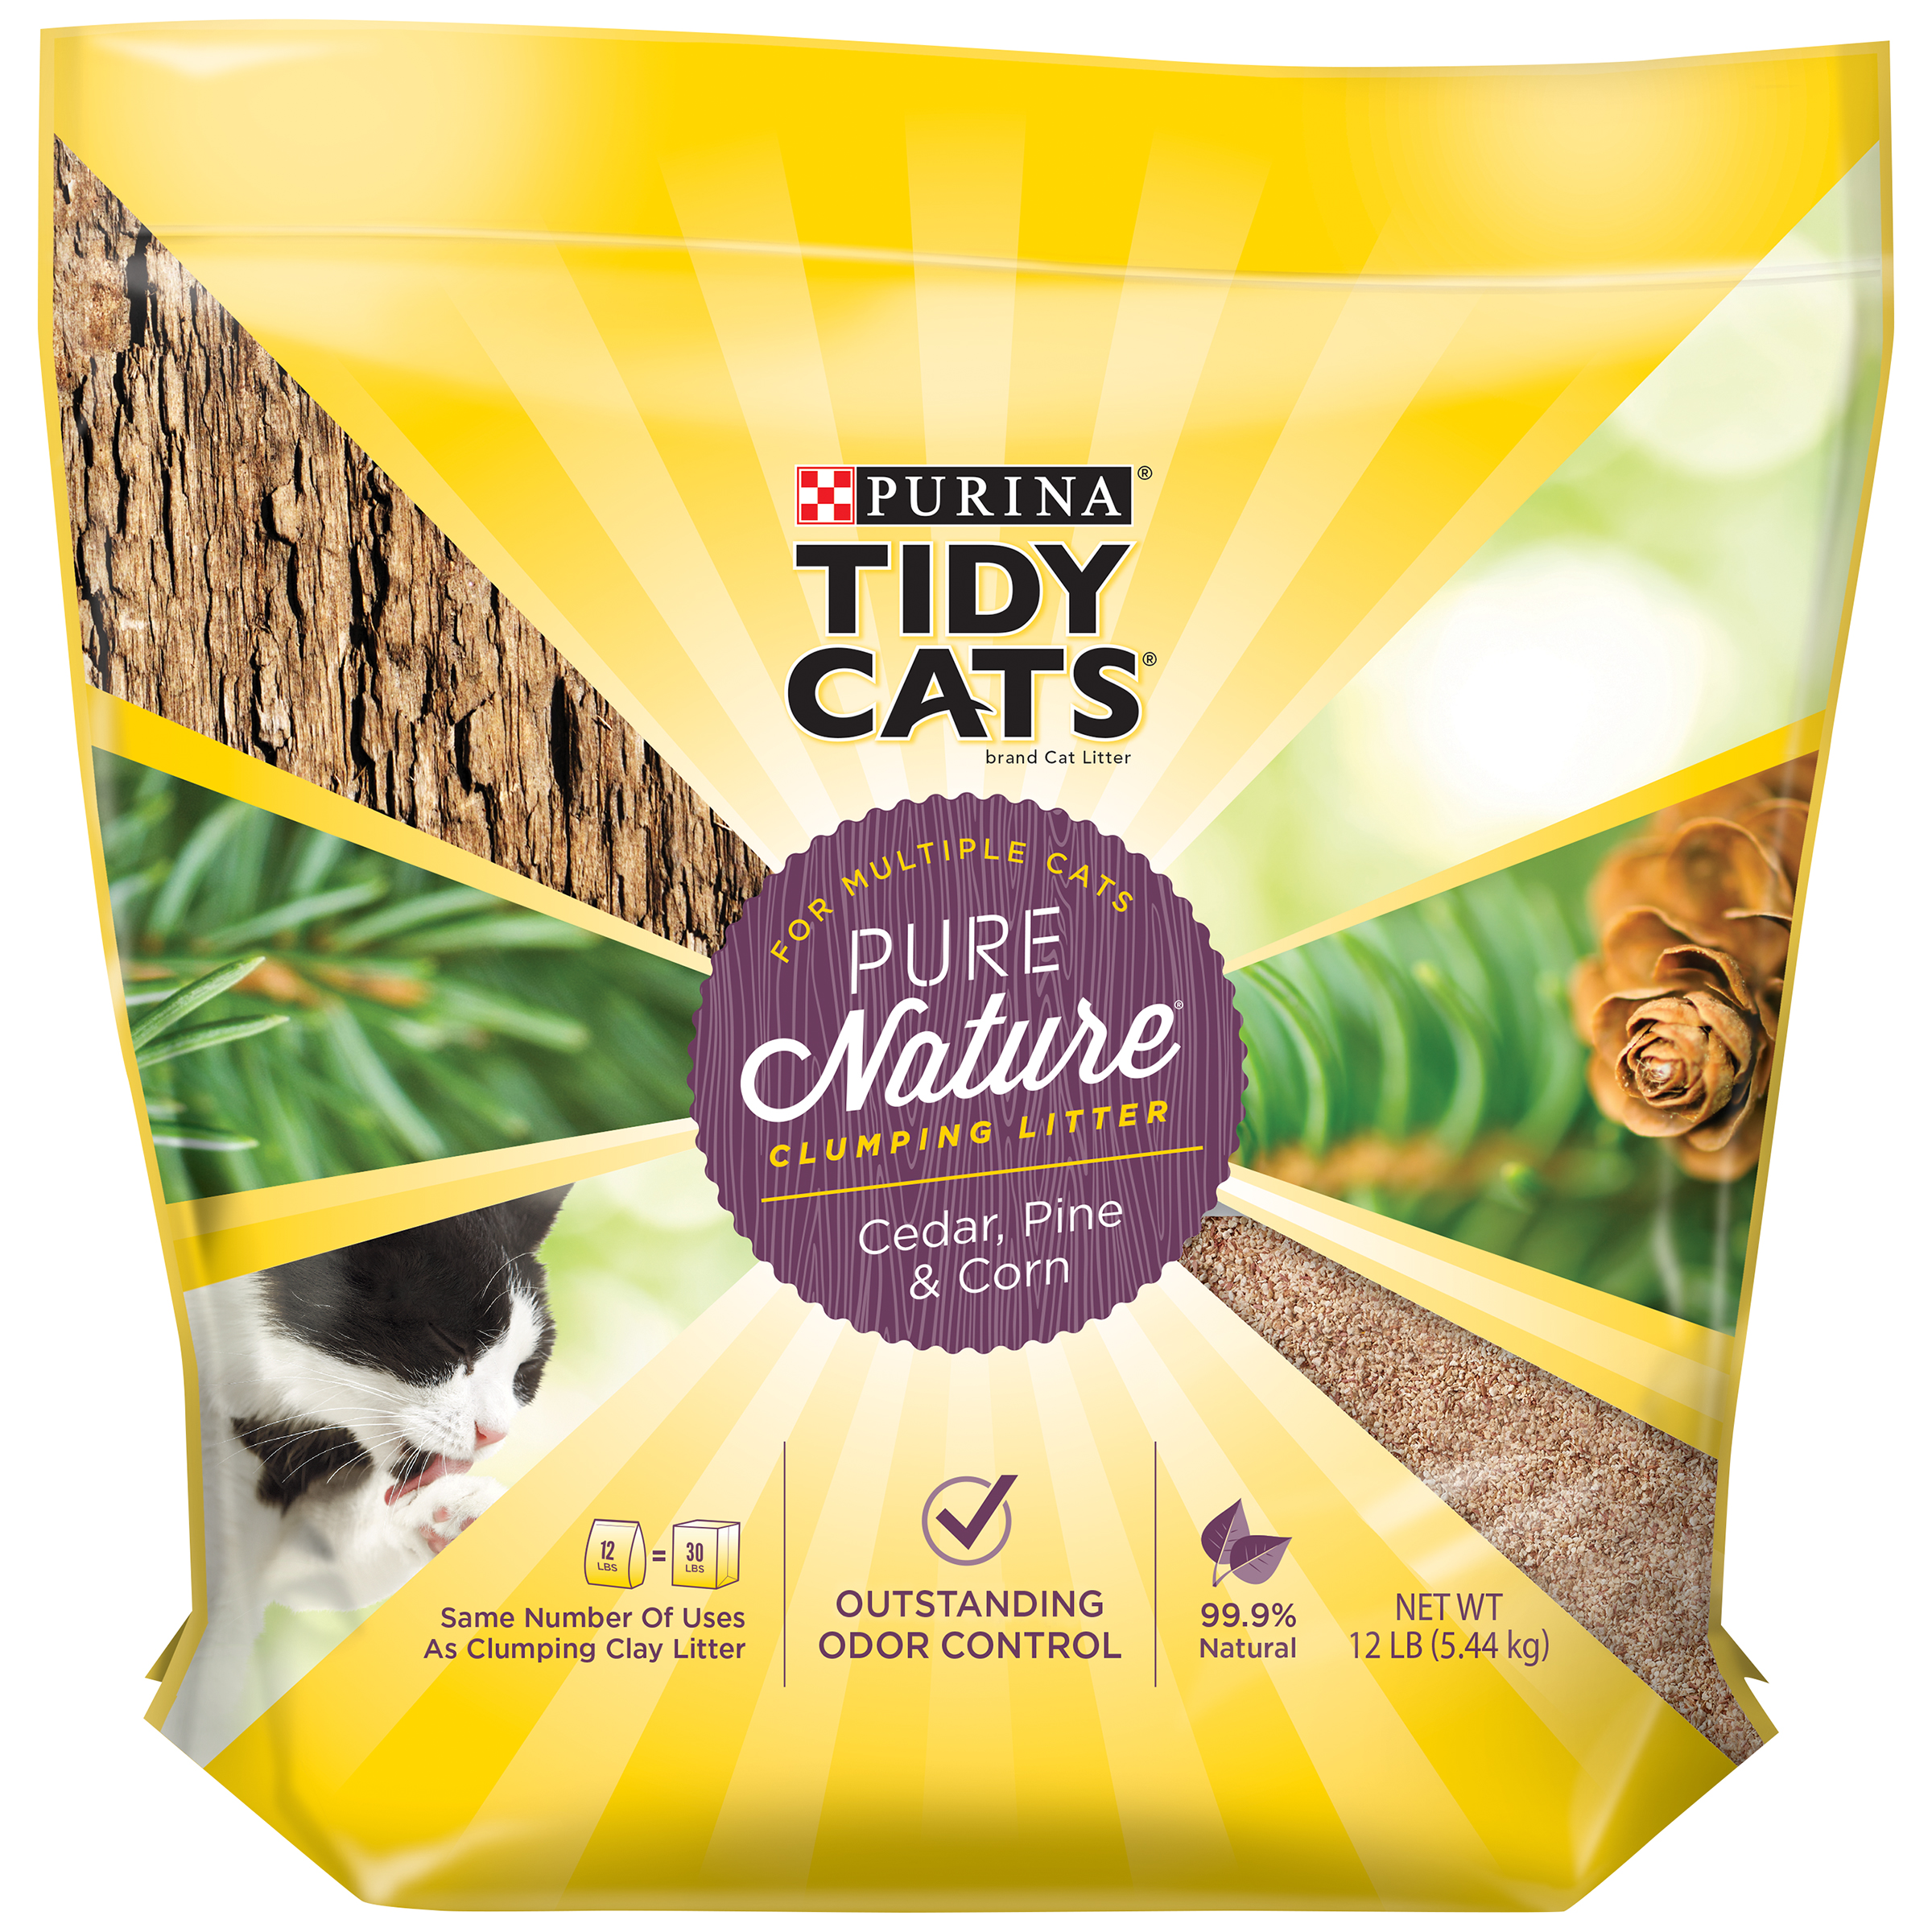 Purina Tidy Cats Pure Nature Cedar, Pine & Corn Clumping Litter for Multiple Cats 12 lb. Bag